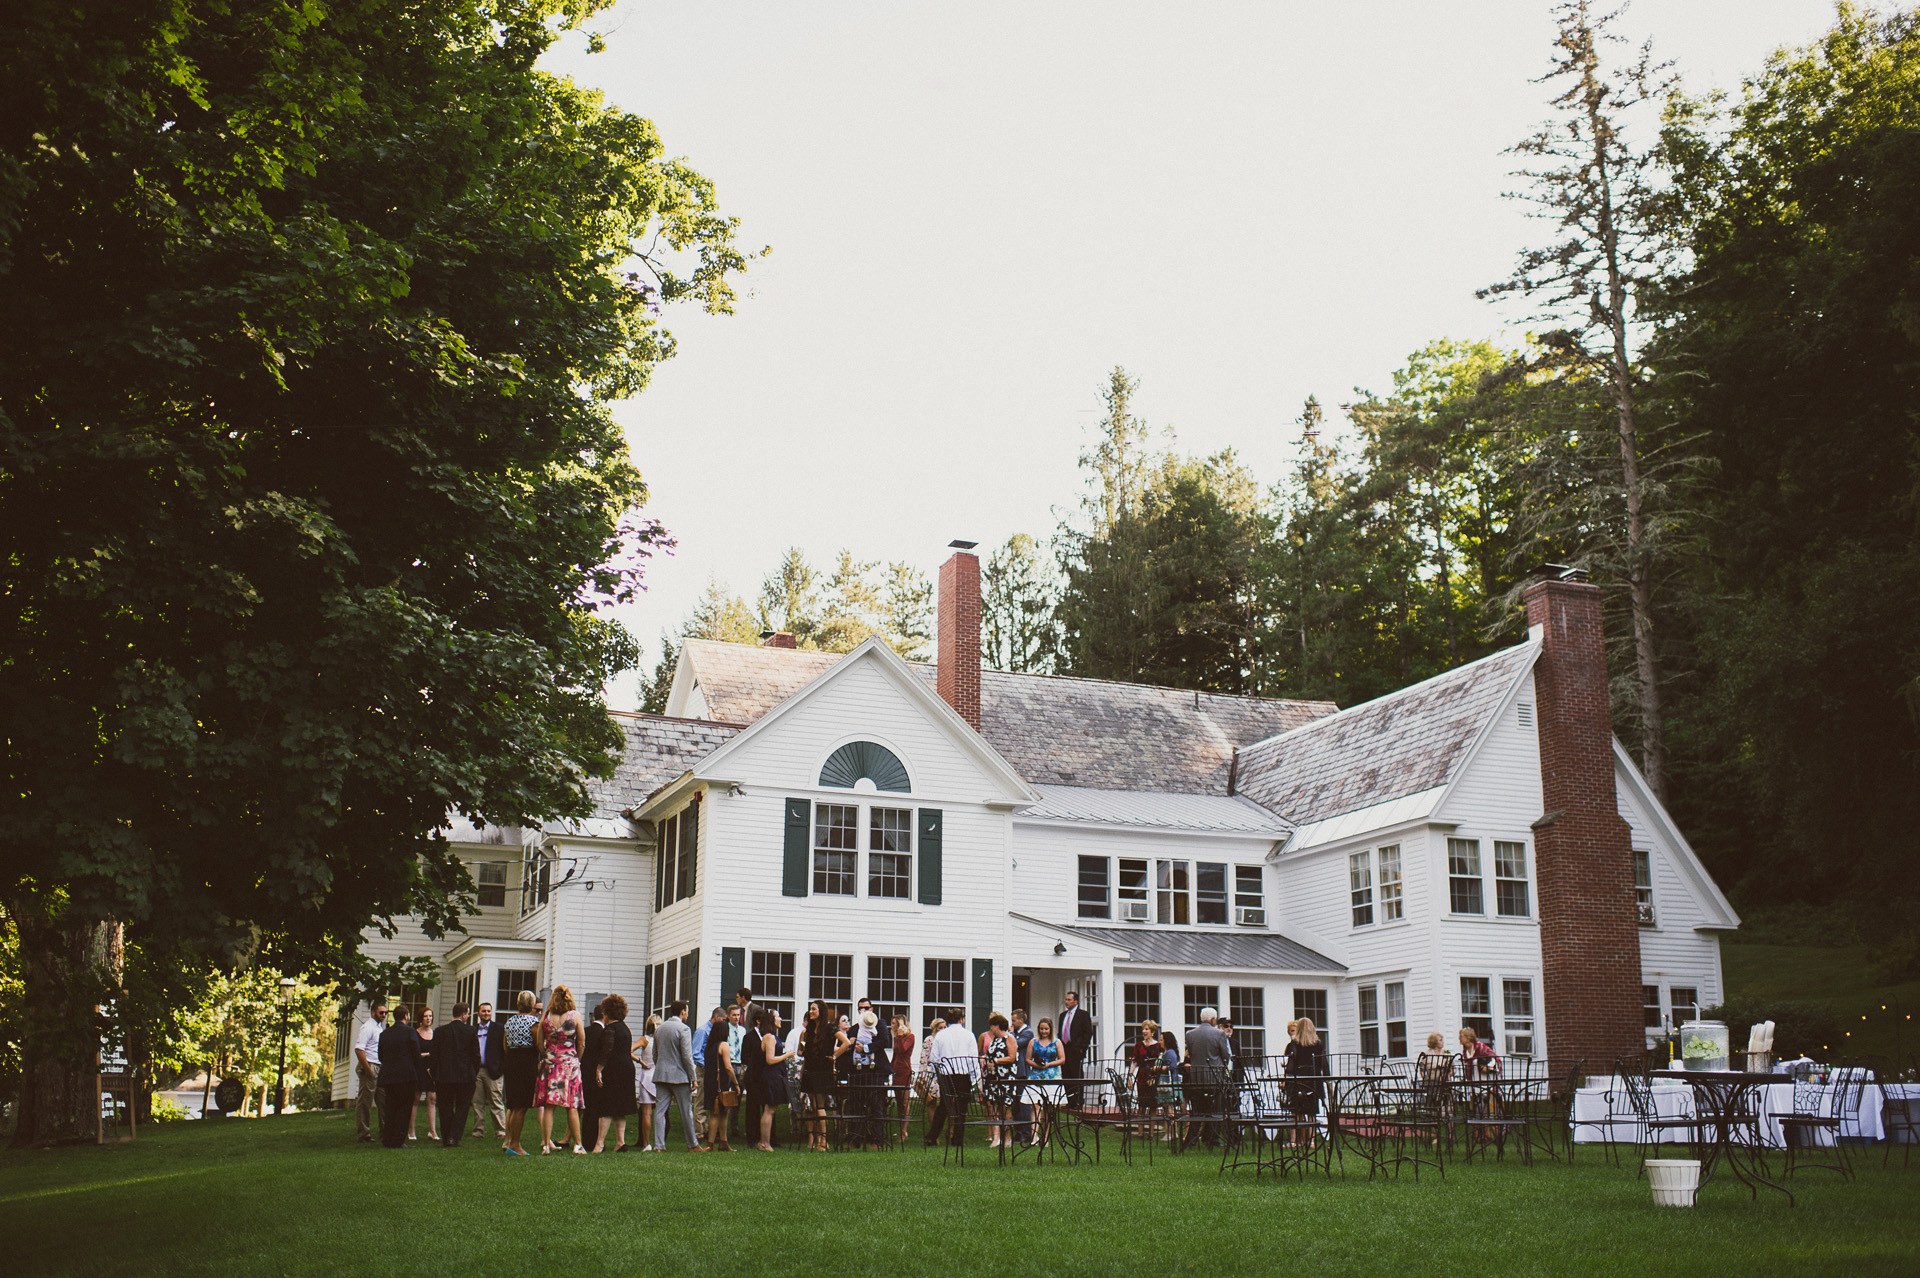 west-mountain-inn-vermont-wedding-251